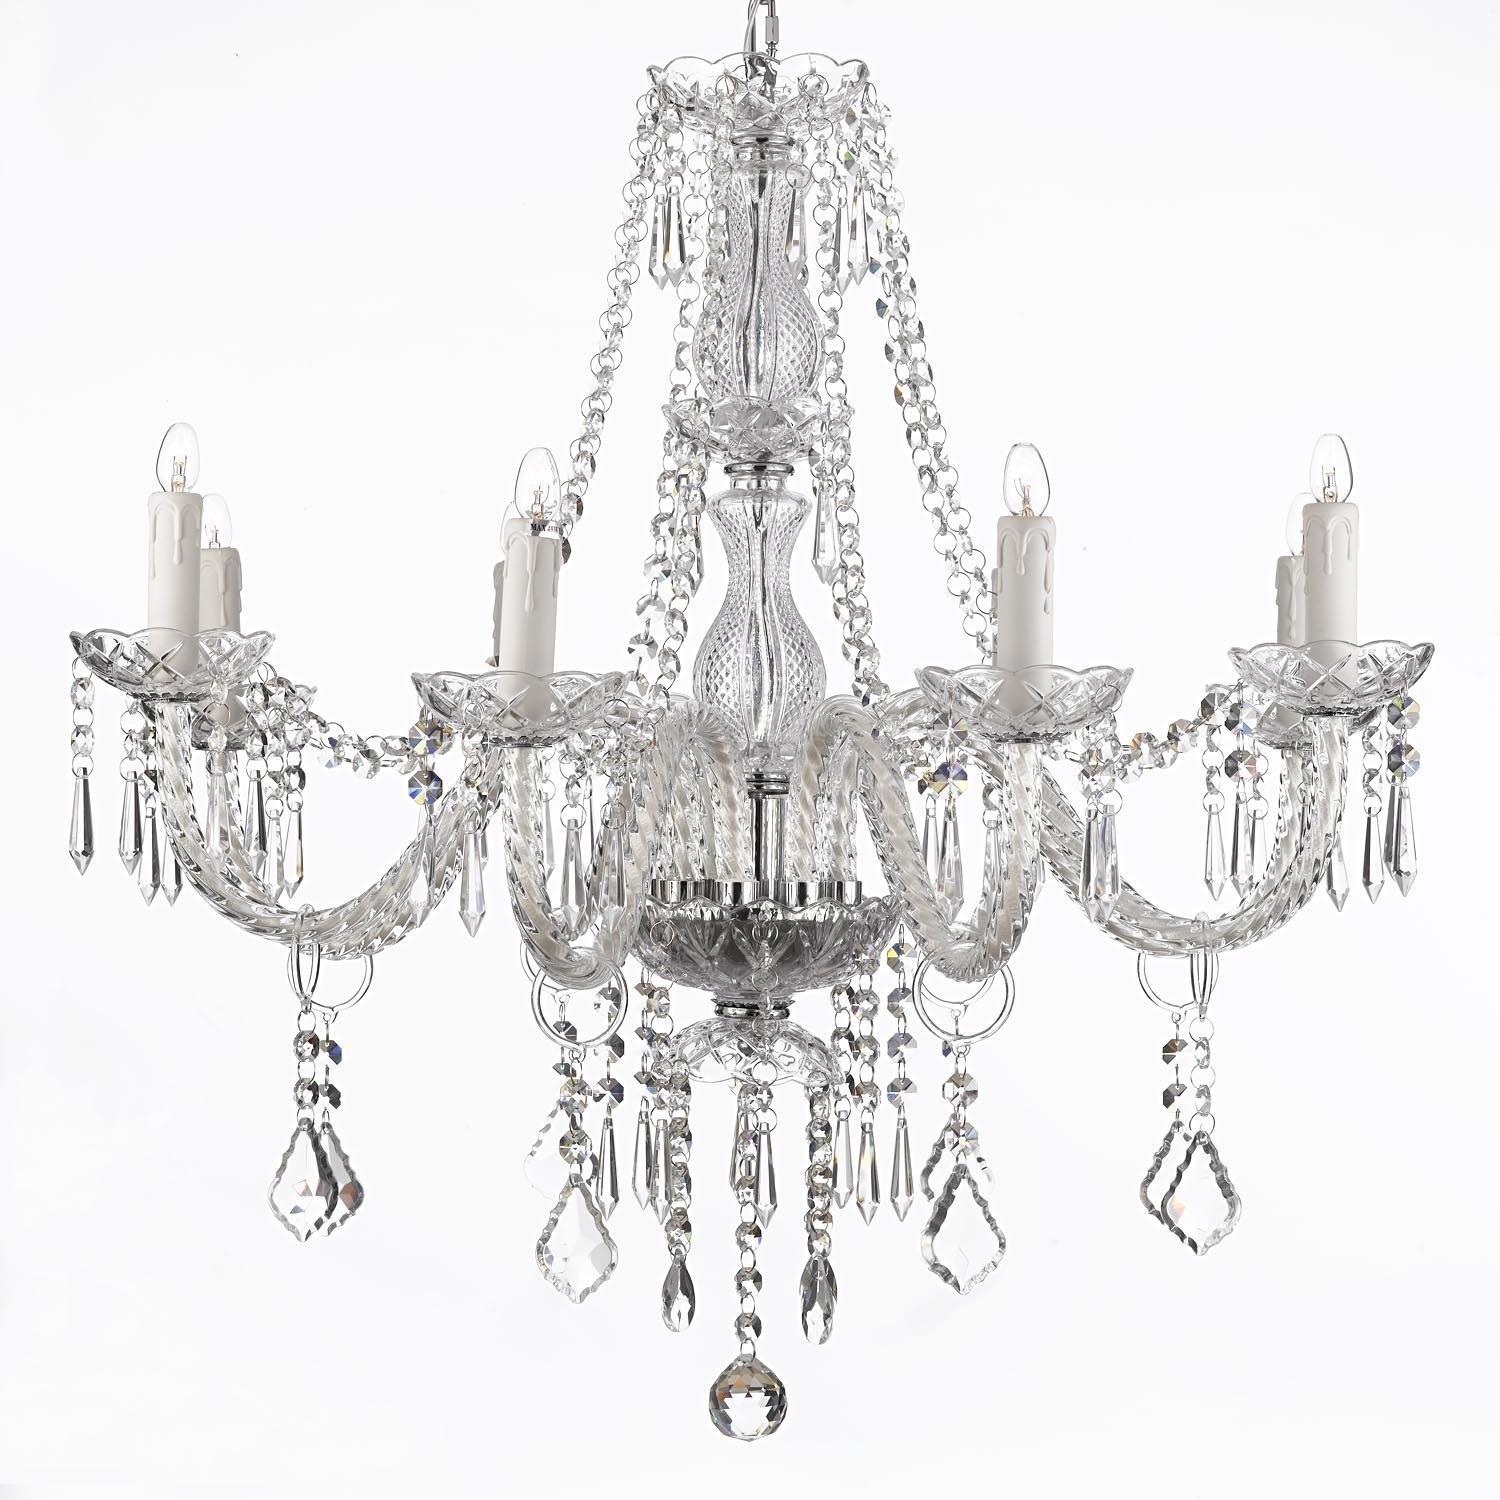 Chandelier Astonishing Faux Crystal Chandeliers Faux Chandeliers With White And Crystal Chandeliers (Image 6 of 25)